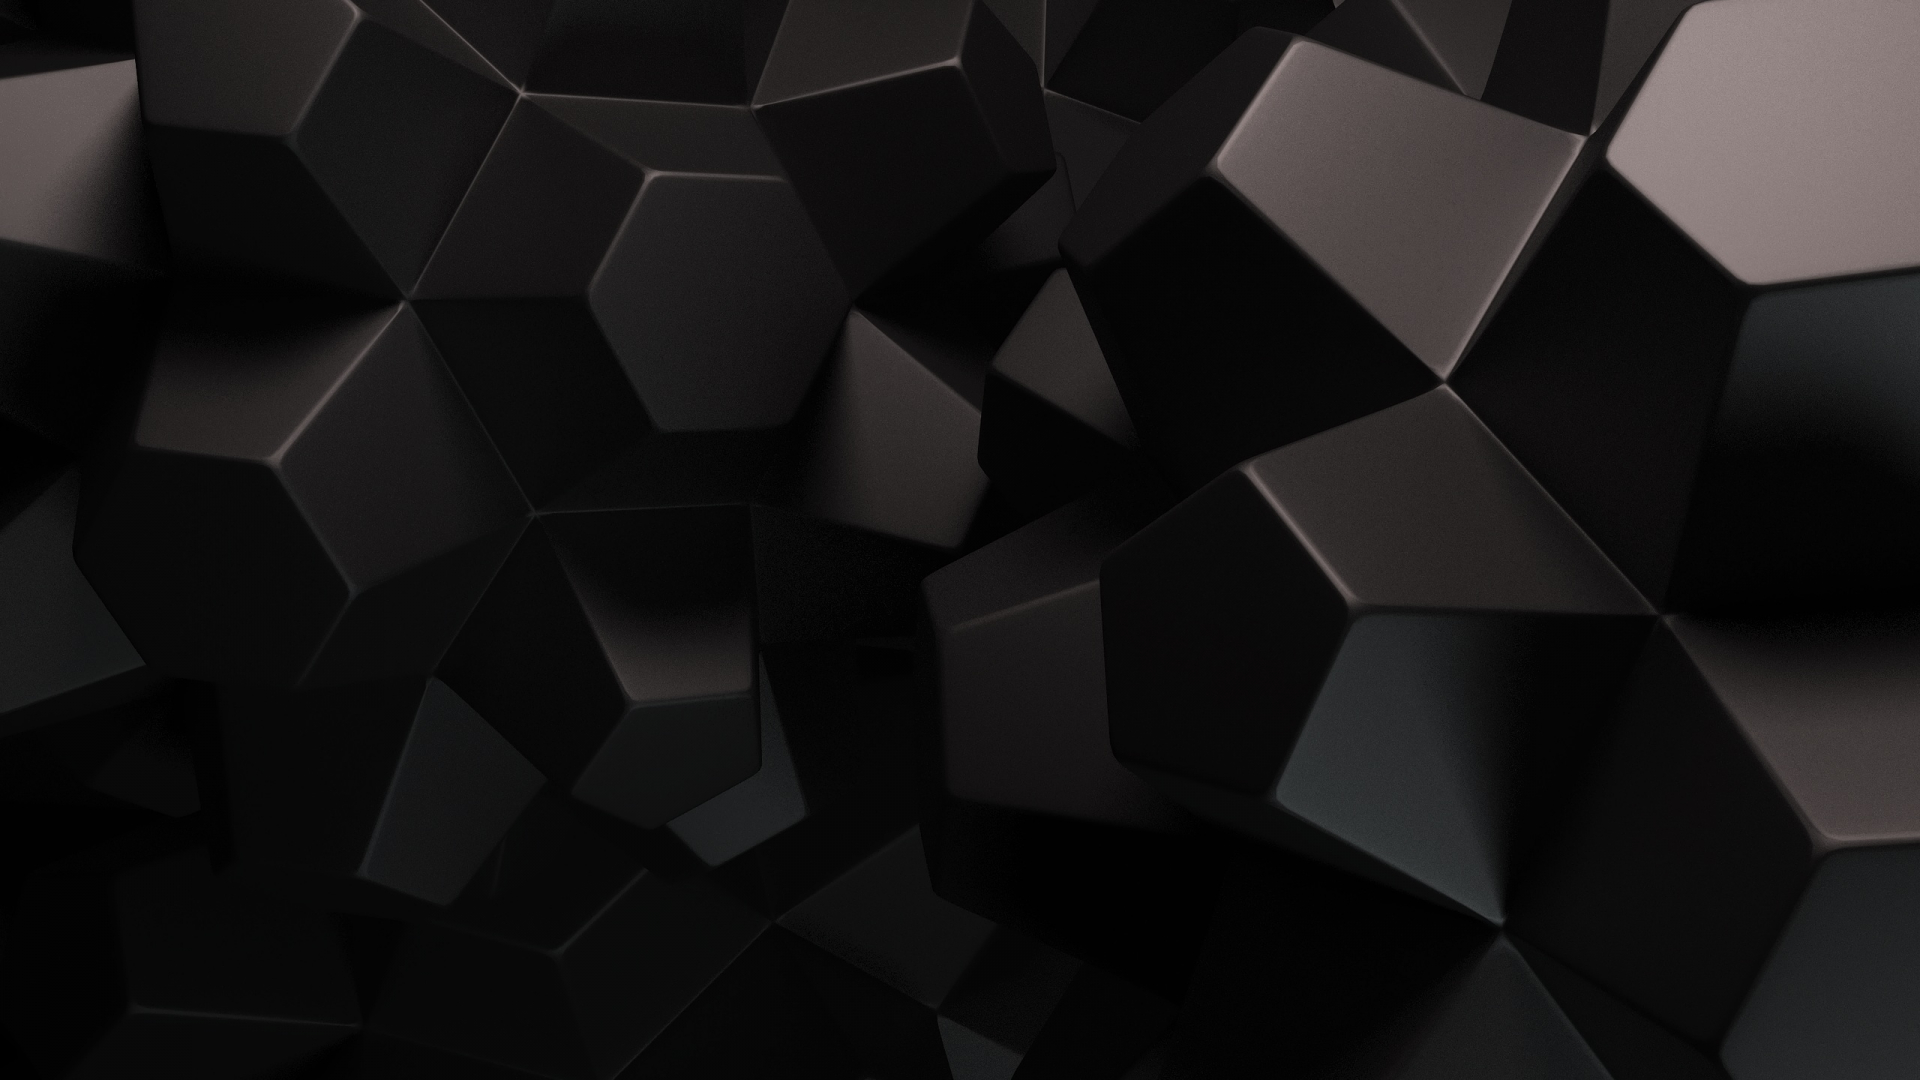 Free Download 2560x1600 Abstract Black Shapes Desktop Pc And Mac